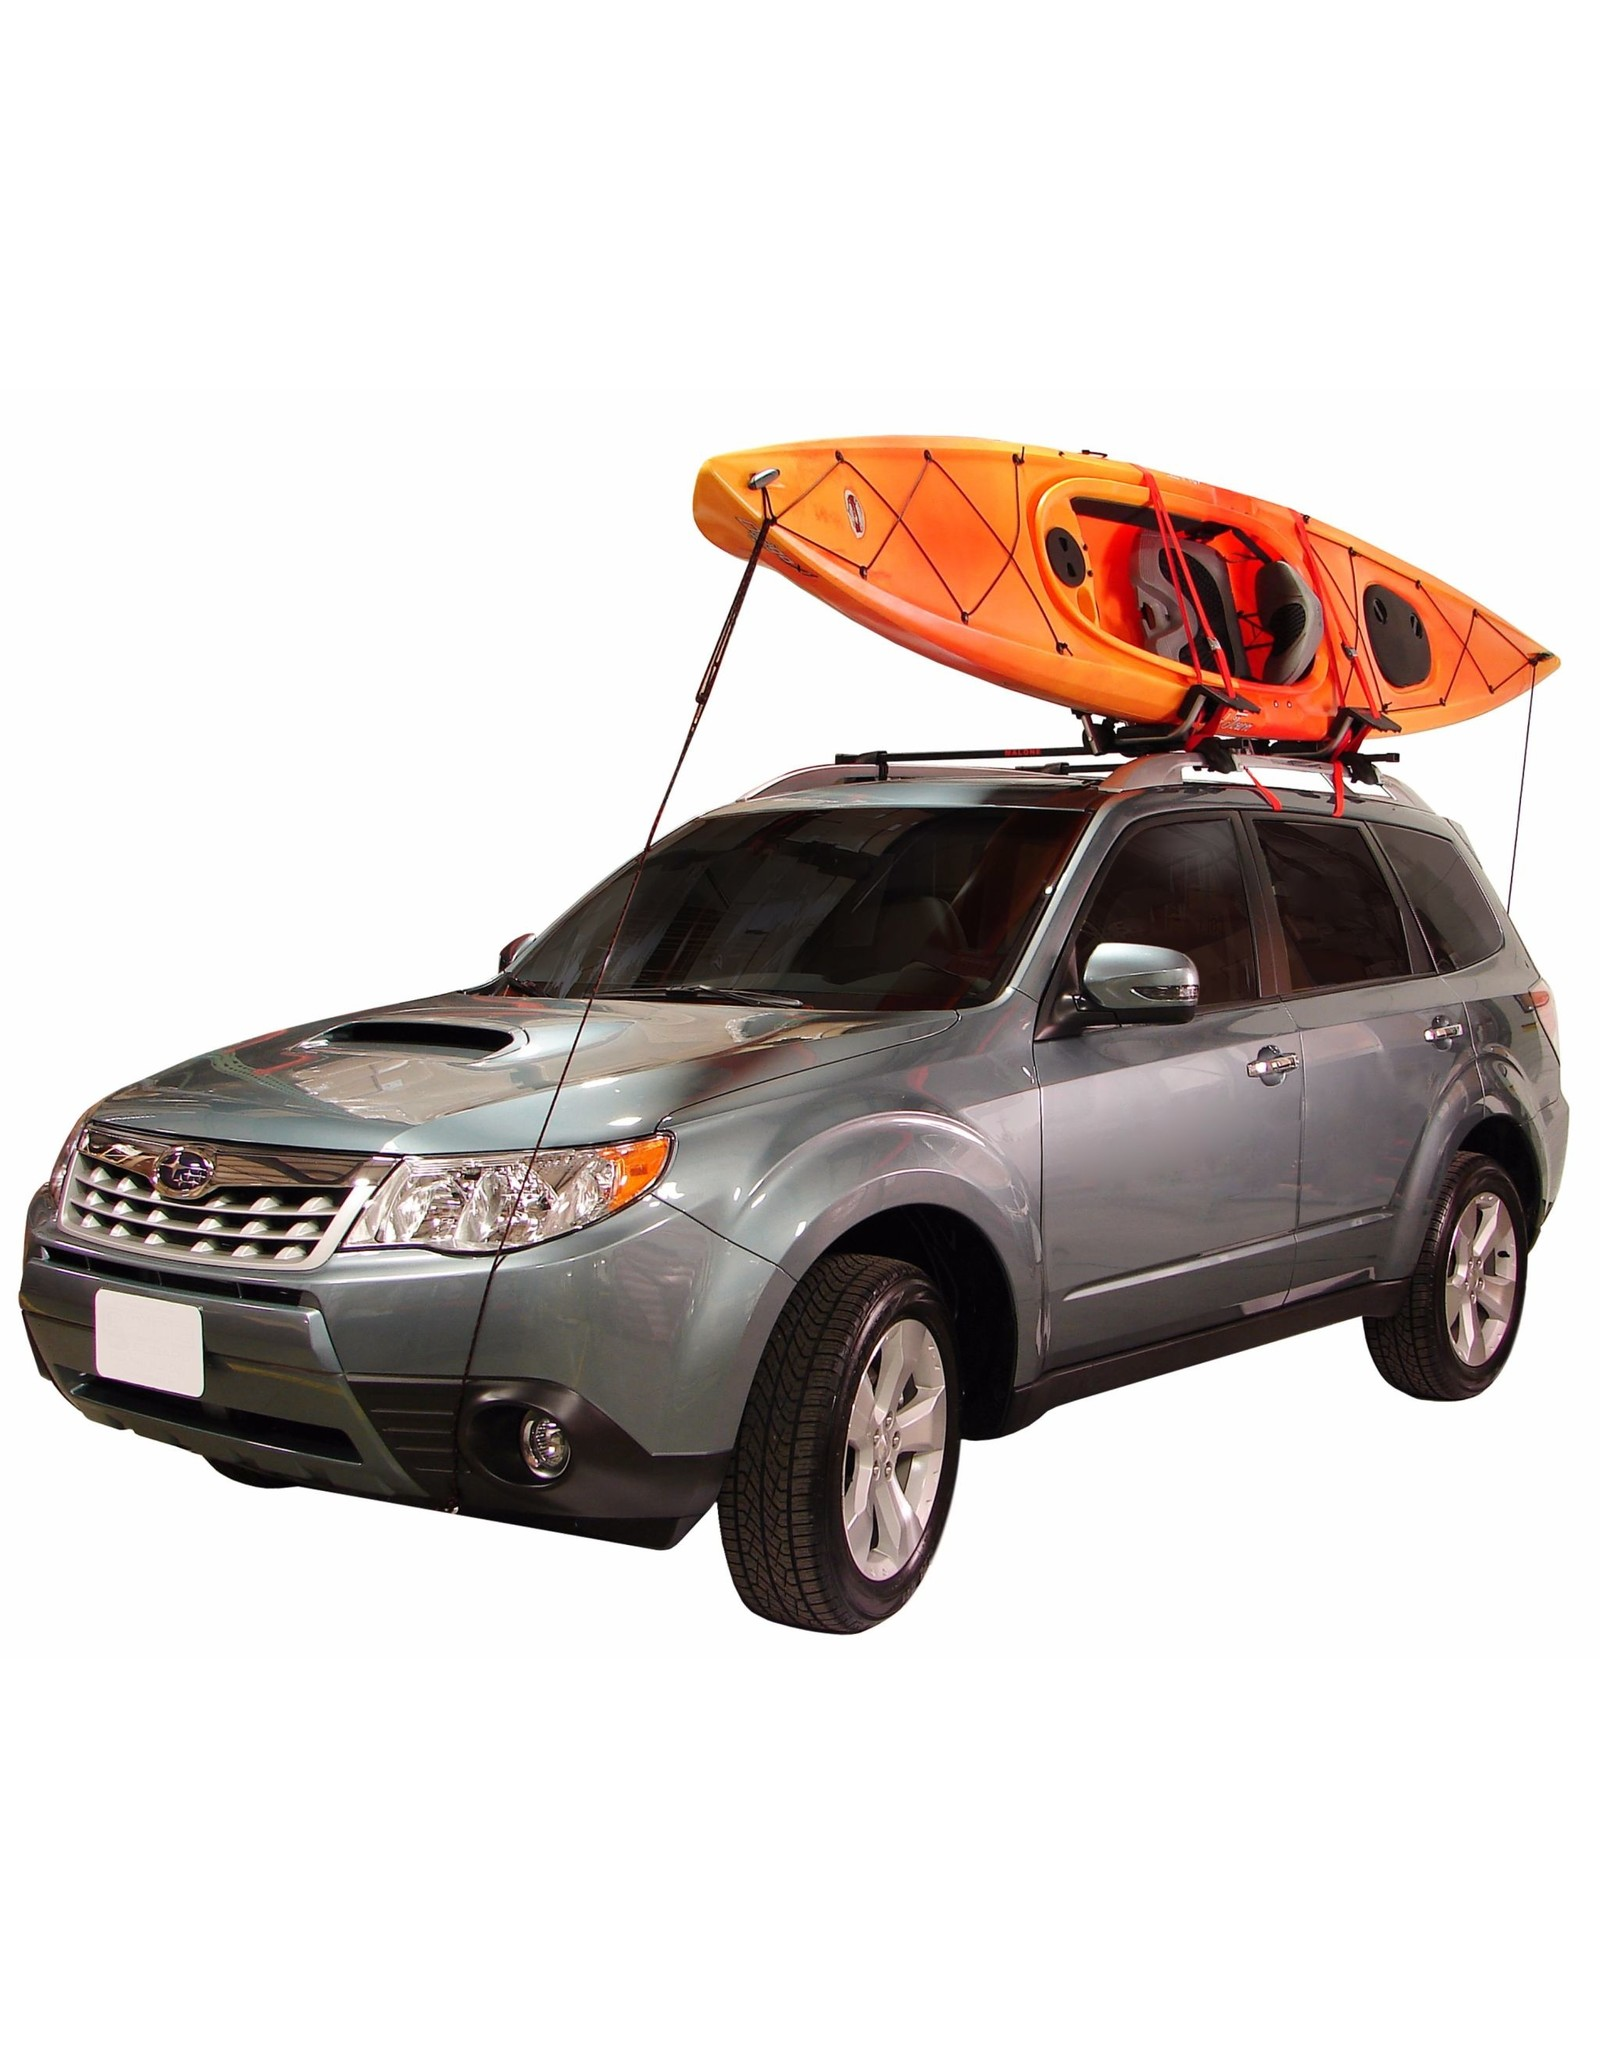 Malone Auto Rack Malone DownLoader Kayak Carrier with Tie-Downs